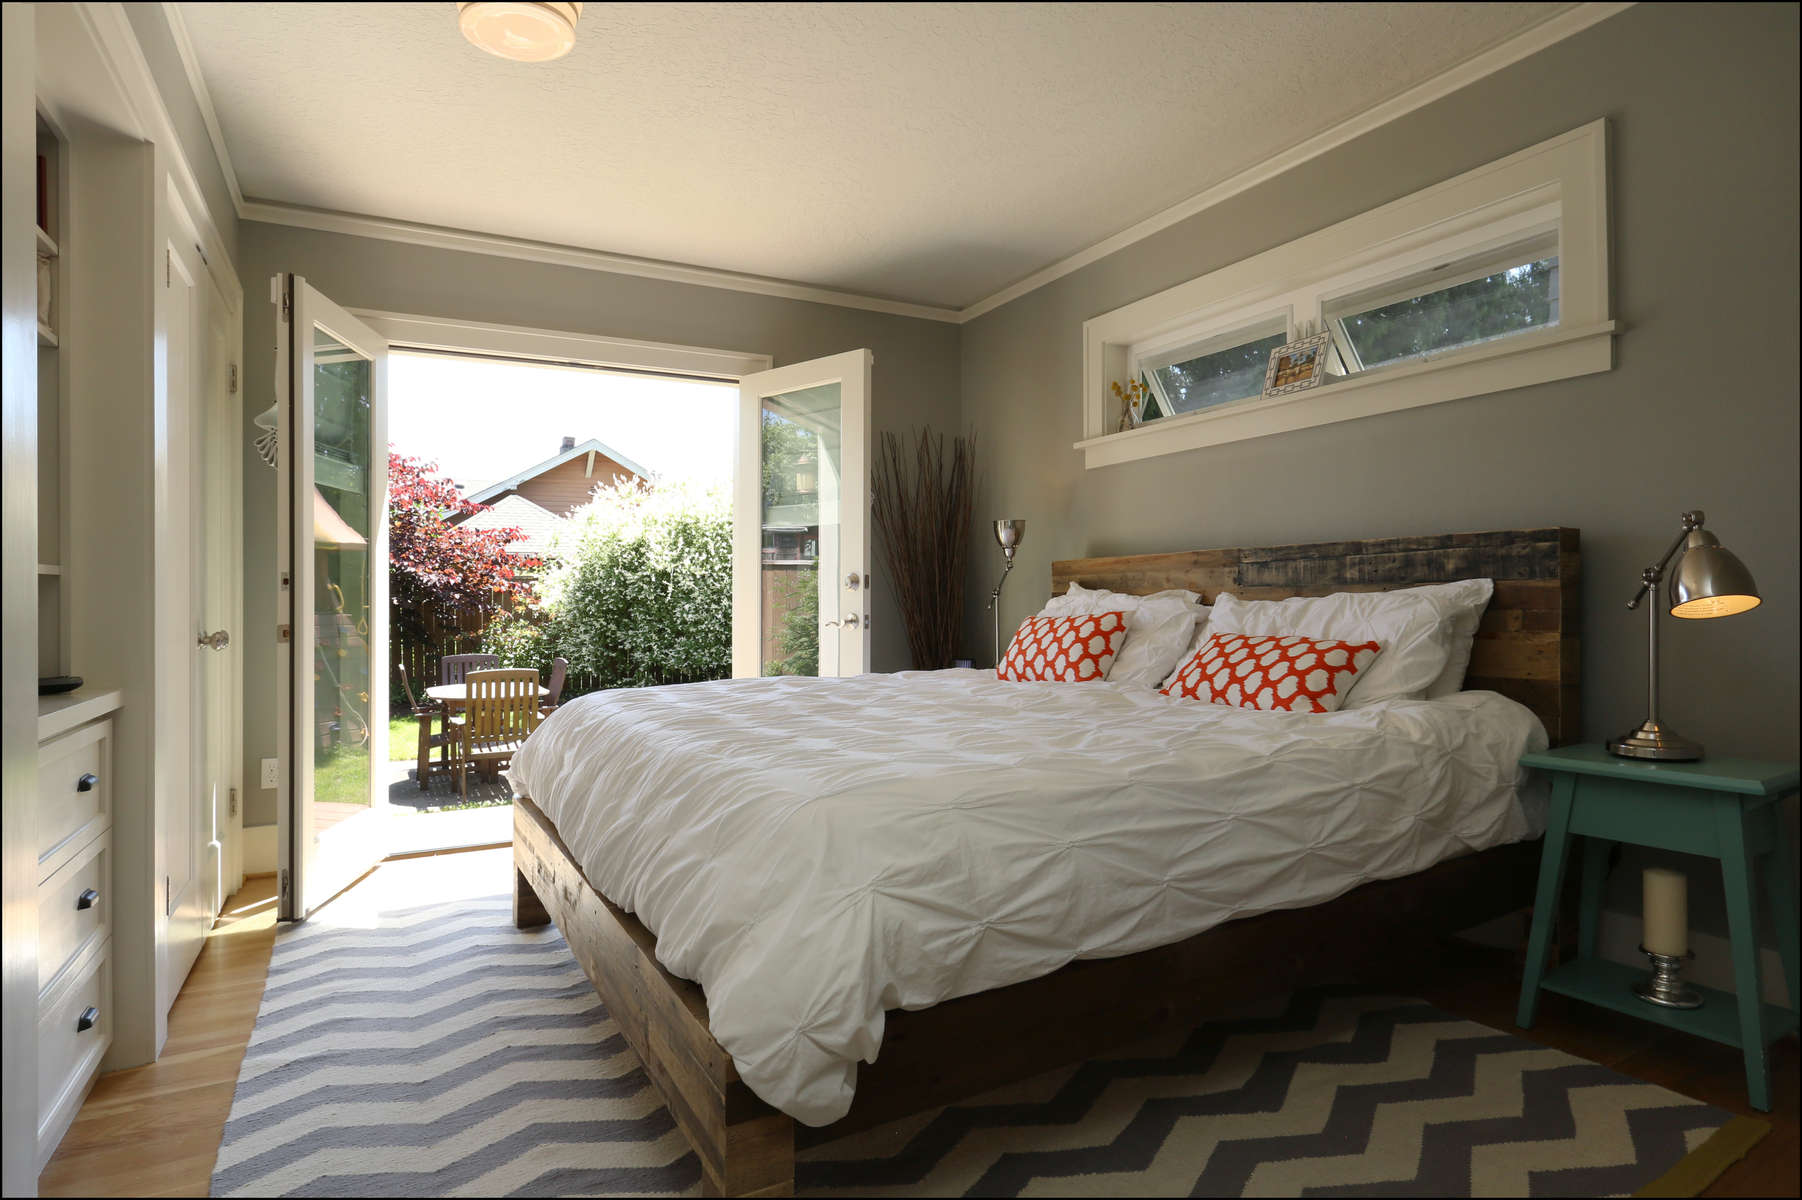 hoa-nikhil-t-1926-capecodecottage-bedroom-a-4